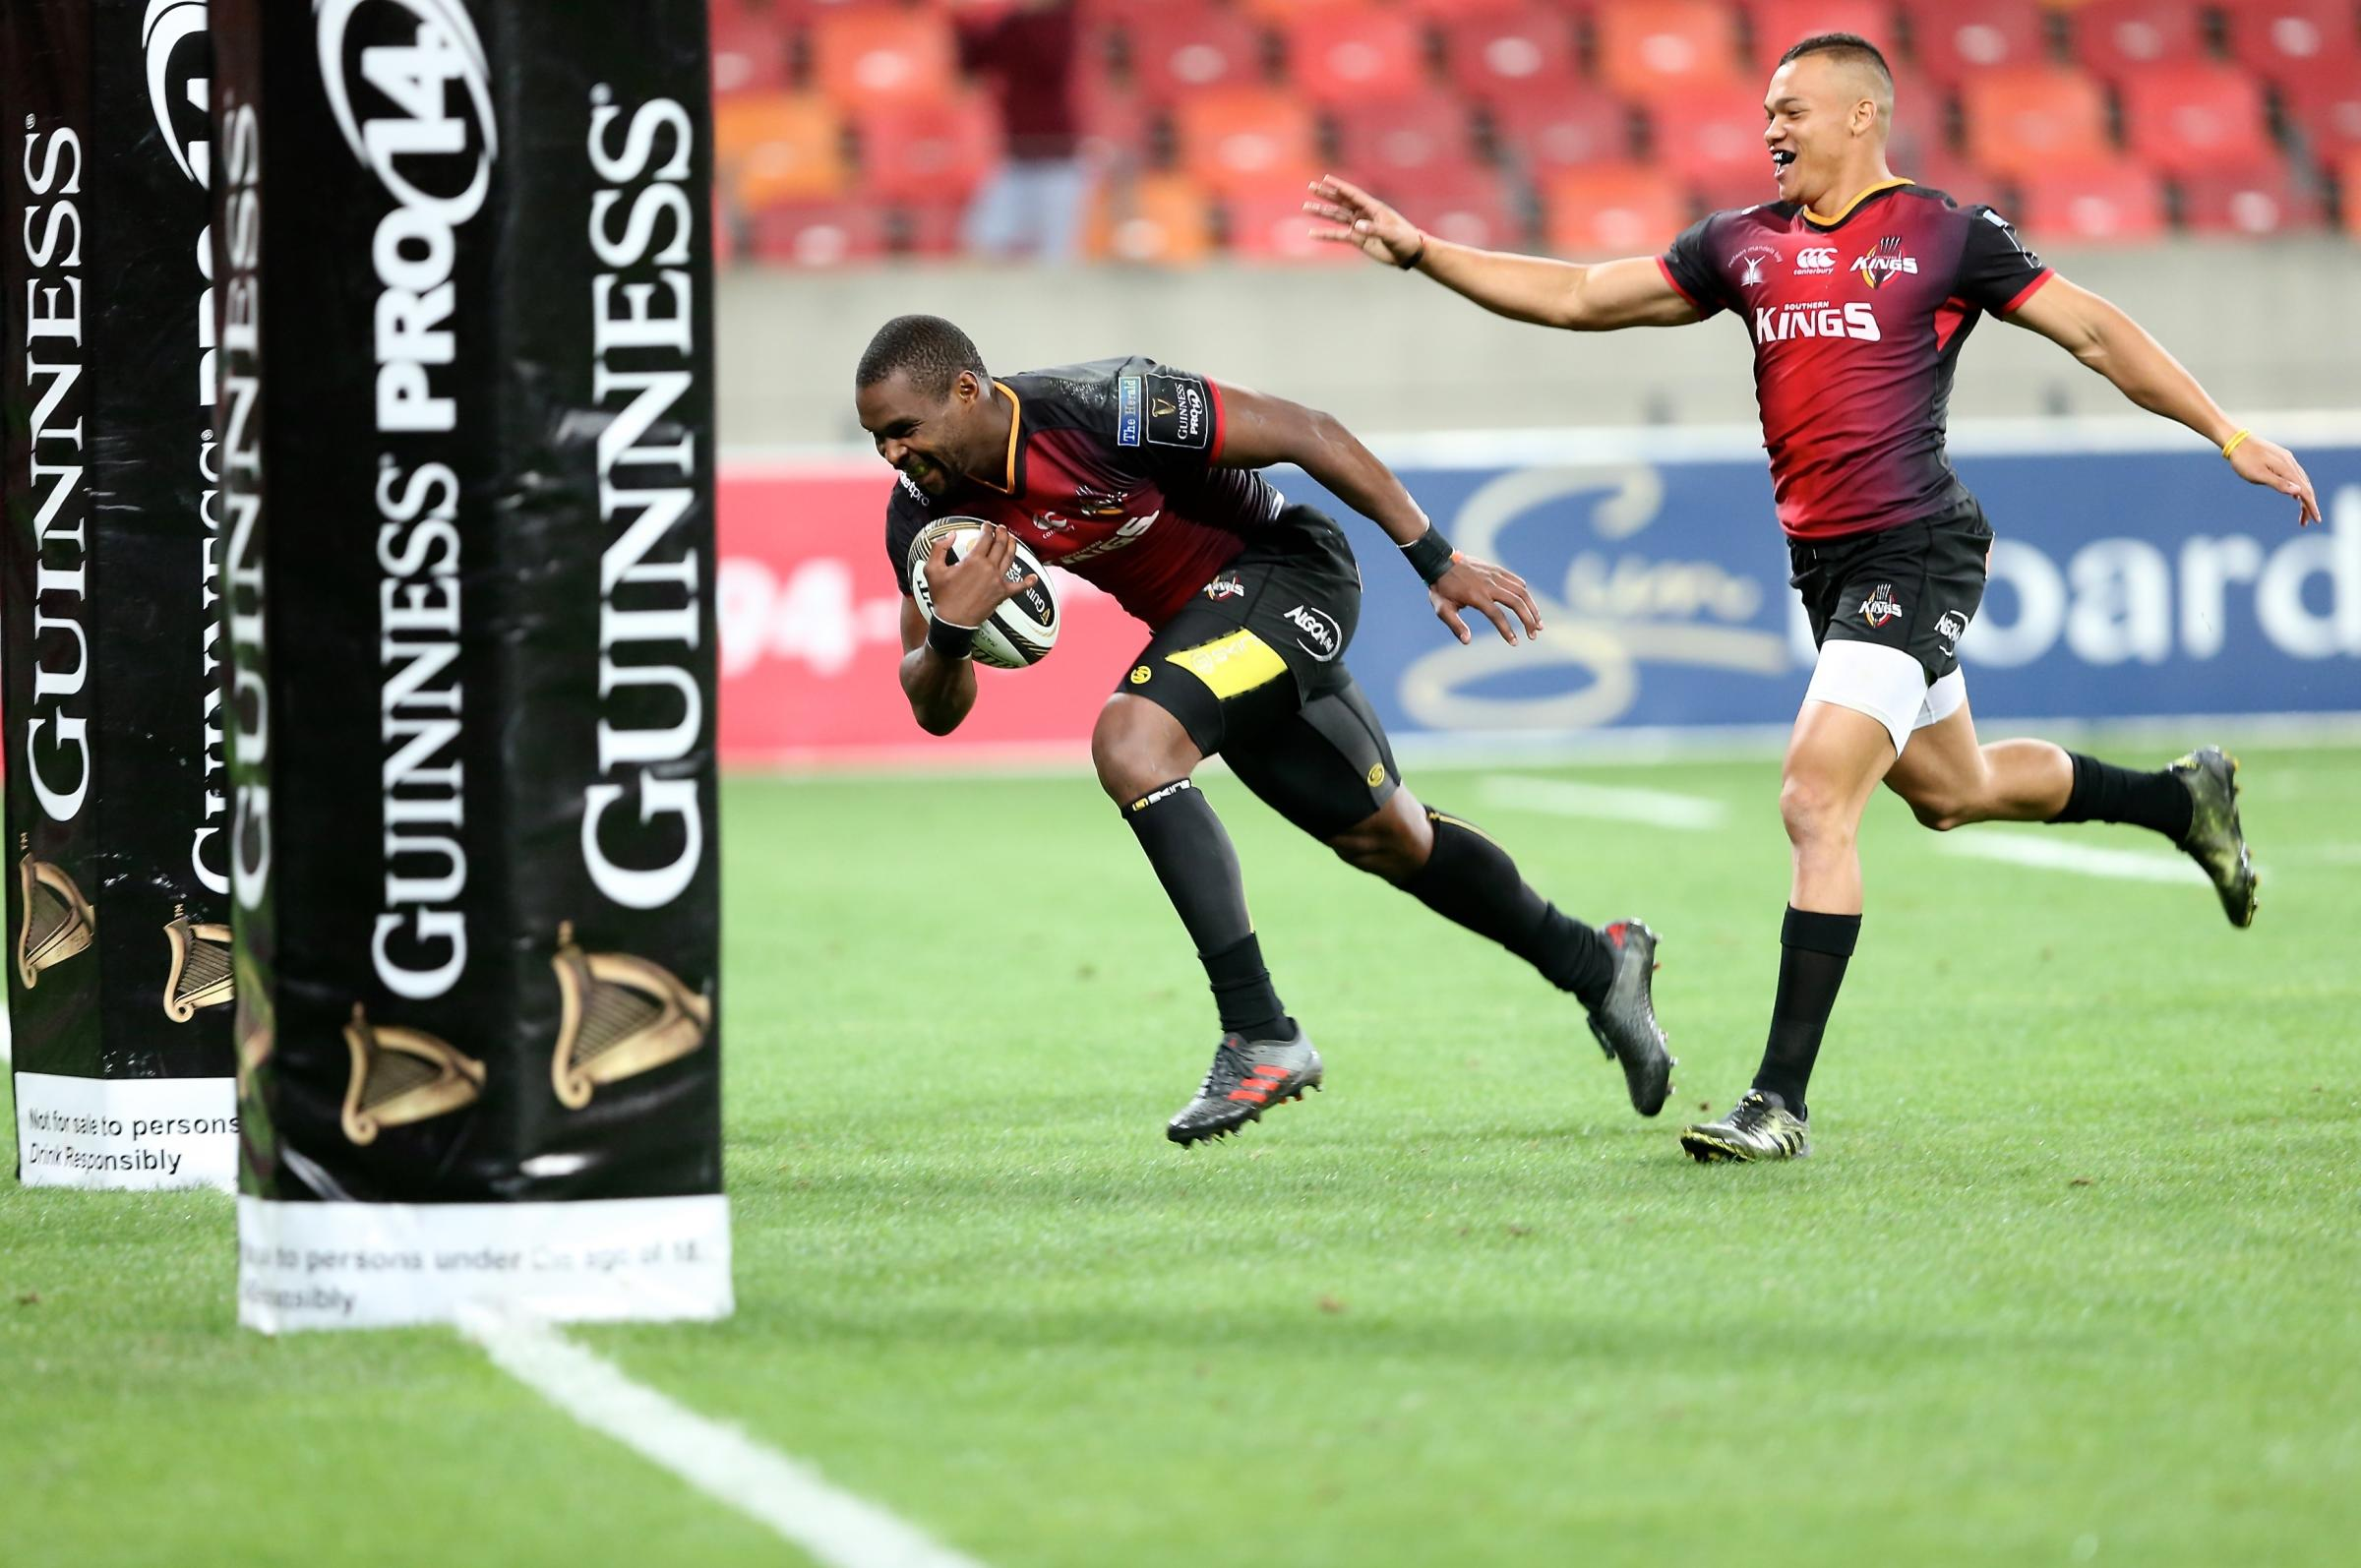 MISERY: Luzuko Vulindlu goes over in the Southern Kings' hammering of the Dragons. Picture: HUW EVANS AGENCY.